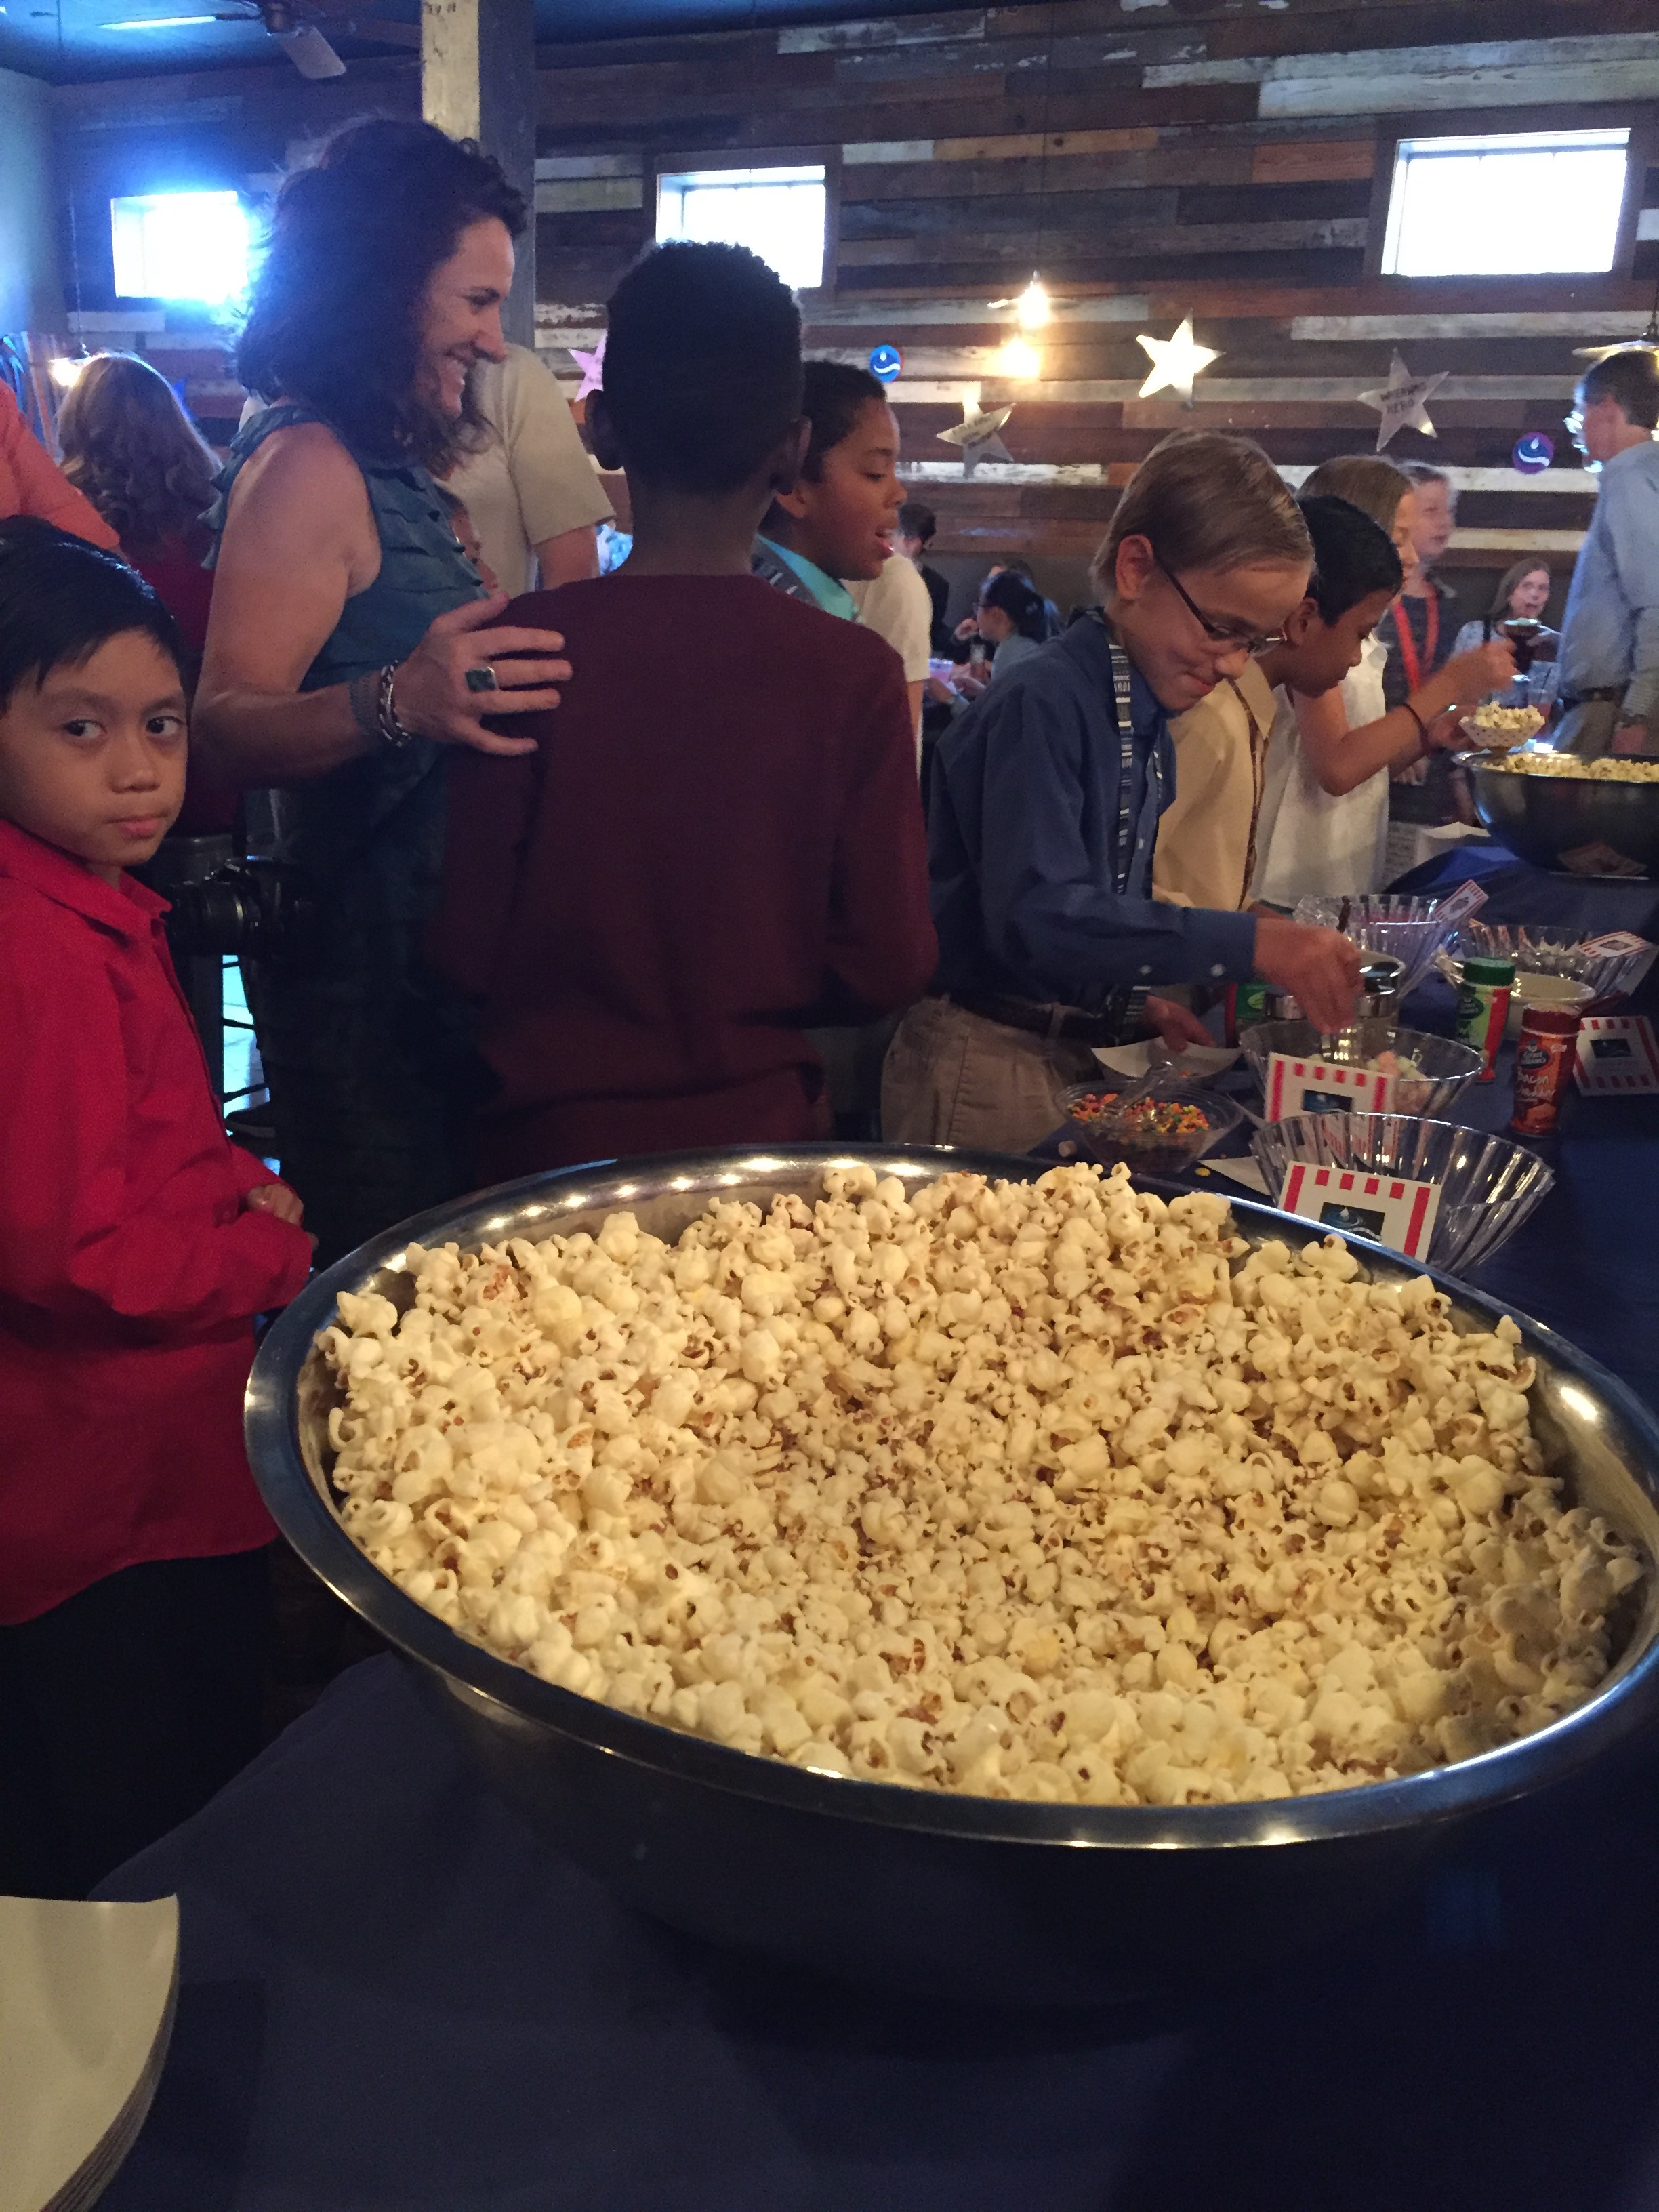 <div style='color:#000000;'><br /><br /><h2>2017 Ripple Effect film festival kids pre-party. Kids and adults submitted films with an ocean conservation theme to the Ripple Effect film festival in Athens, GA. </h2>(c) ECOGIG</div>